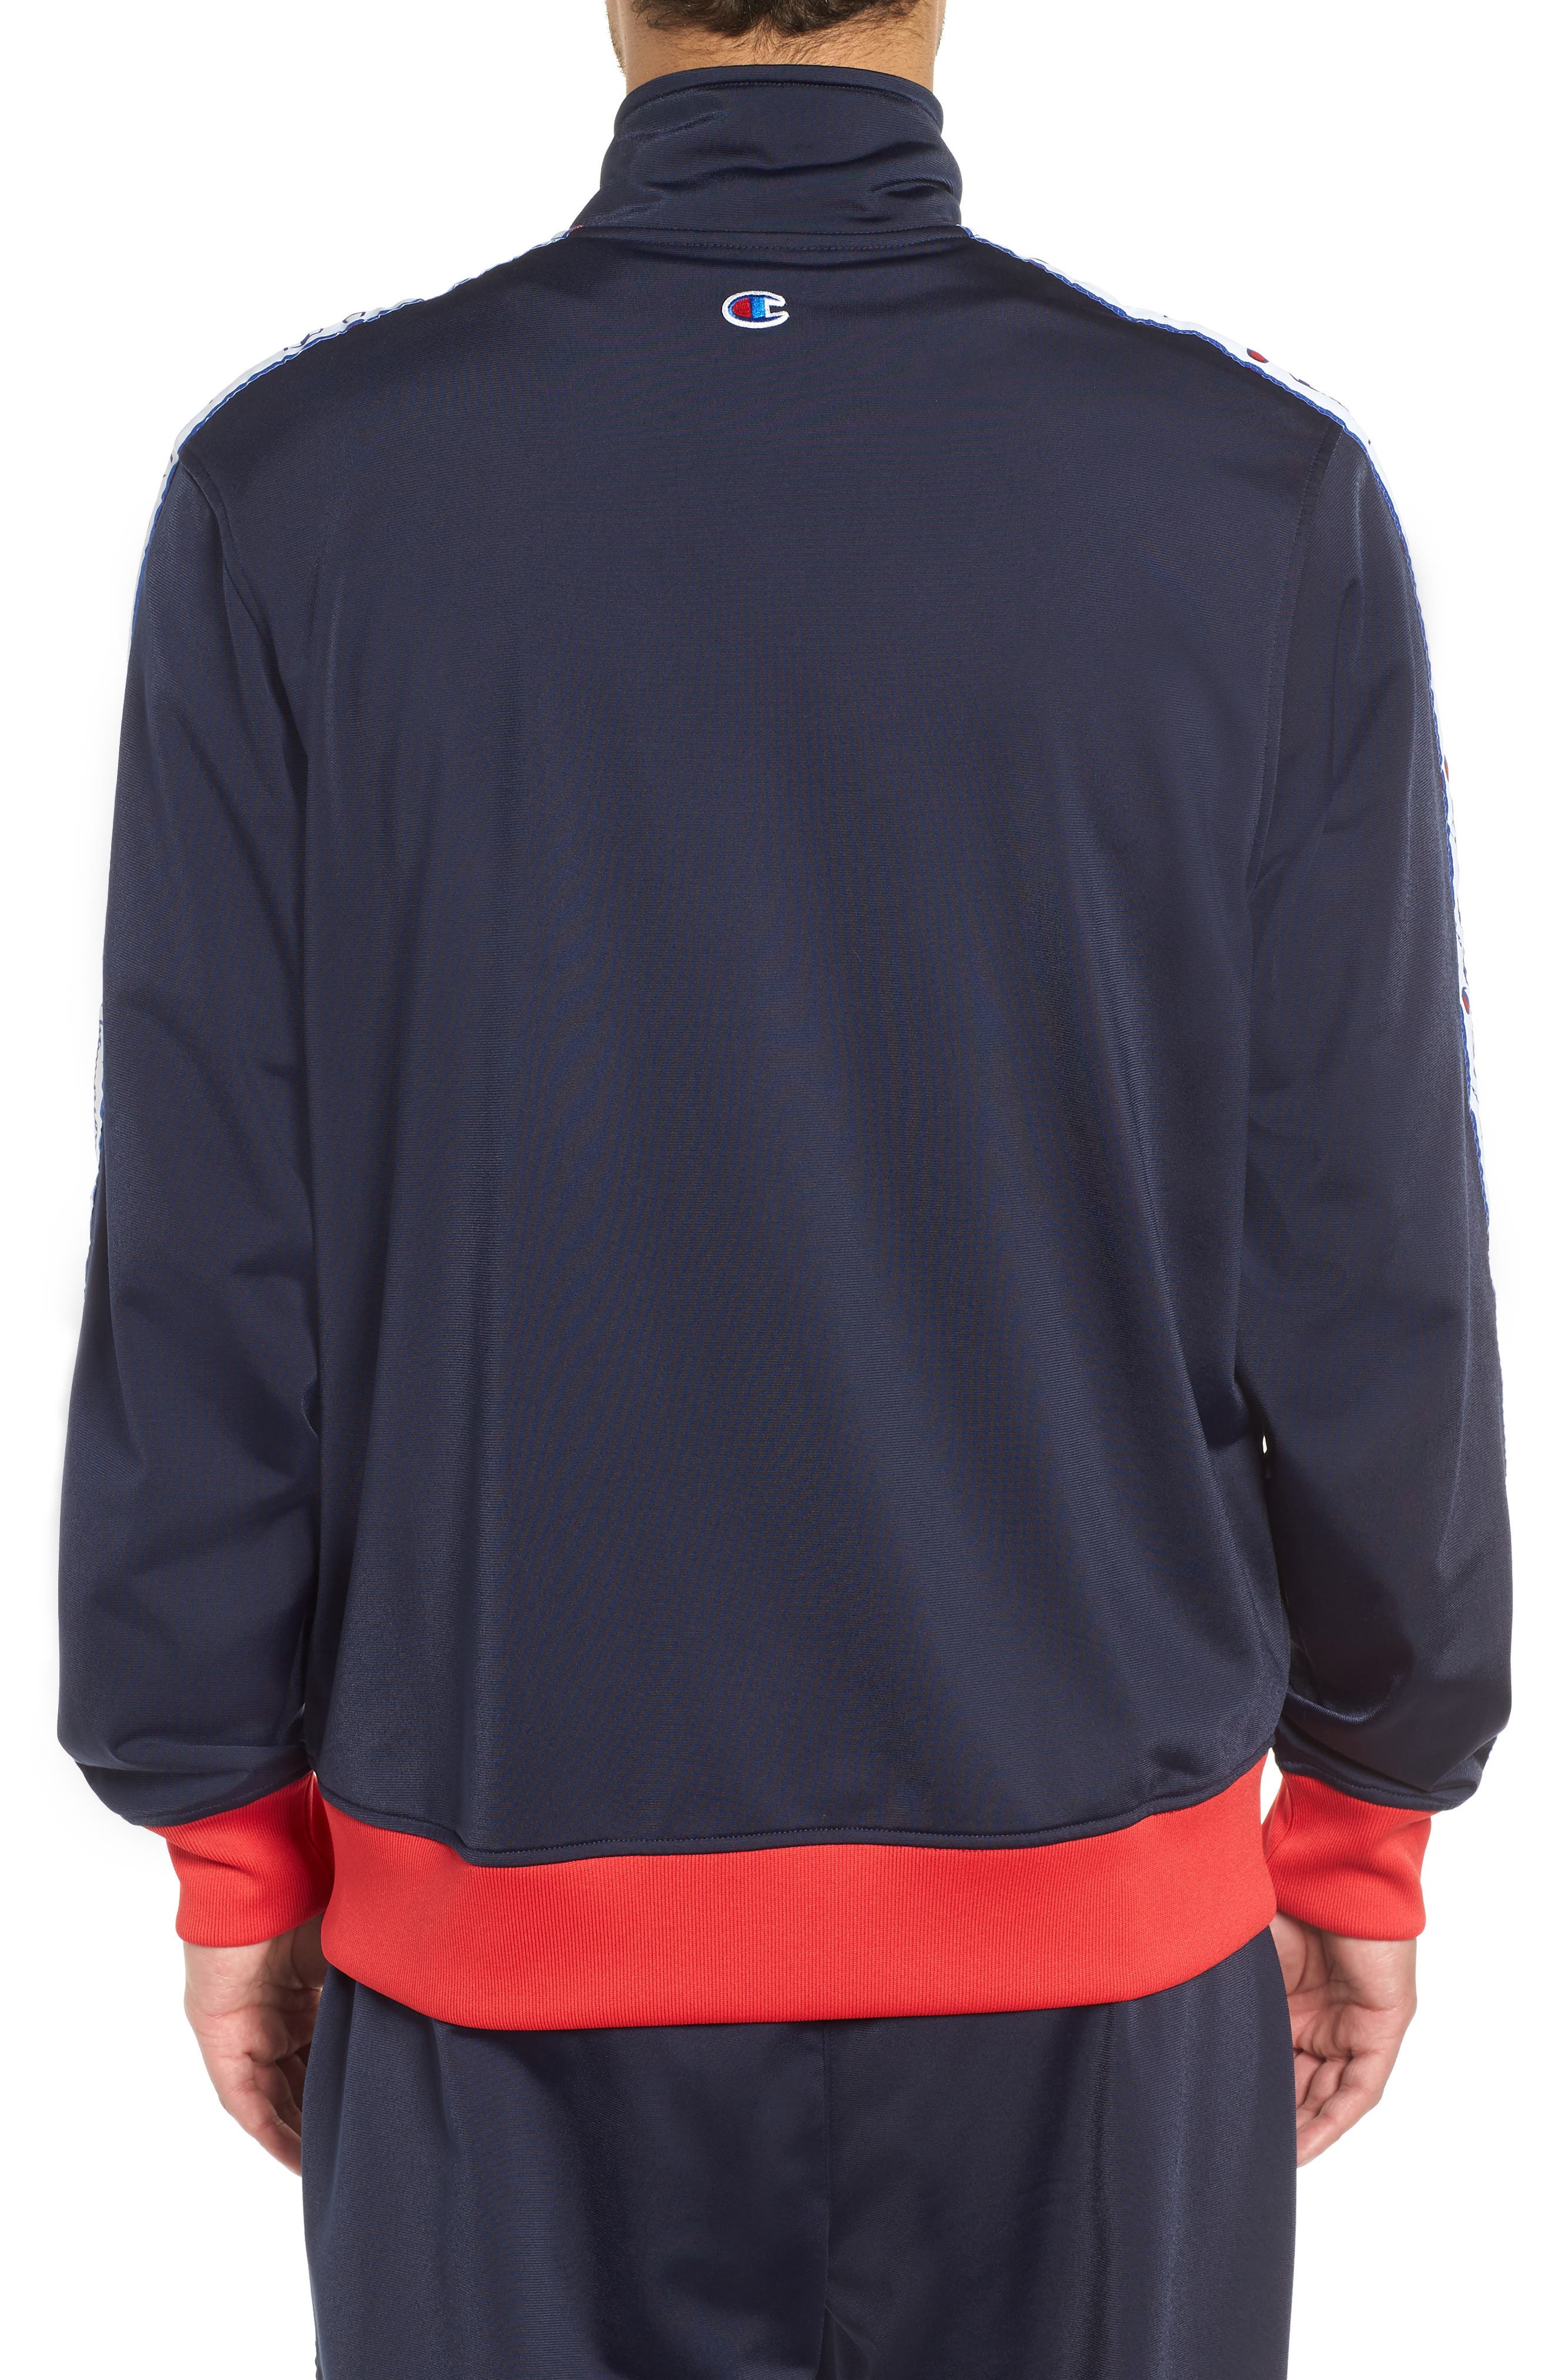 Track Jacket,                             Alternate thumbnail 2, color,                             NAVY/ SCARLET